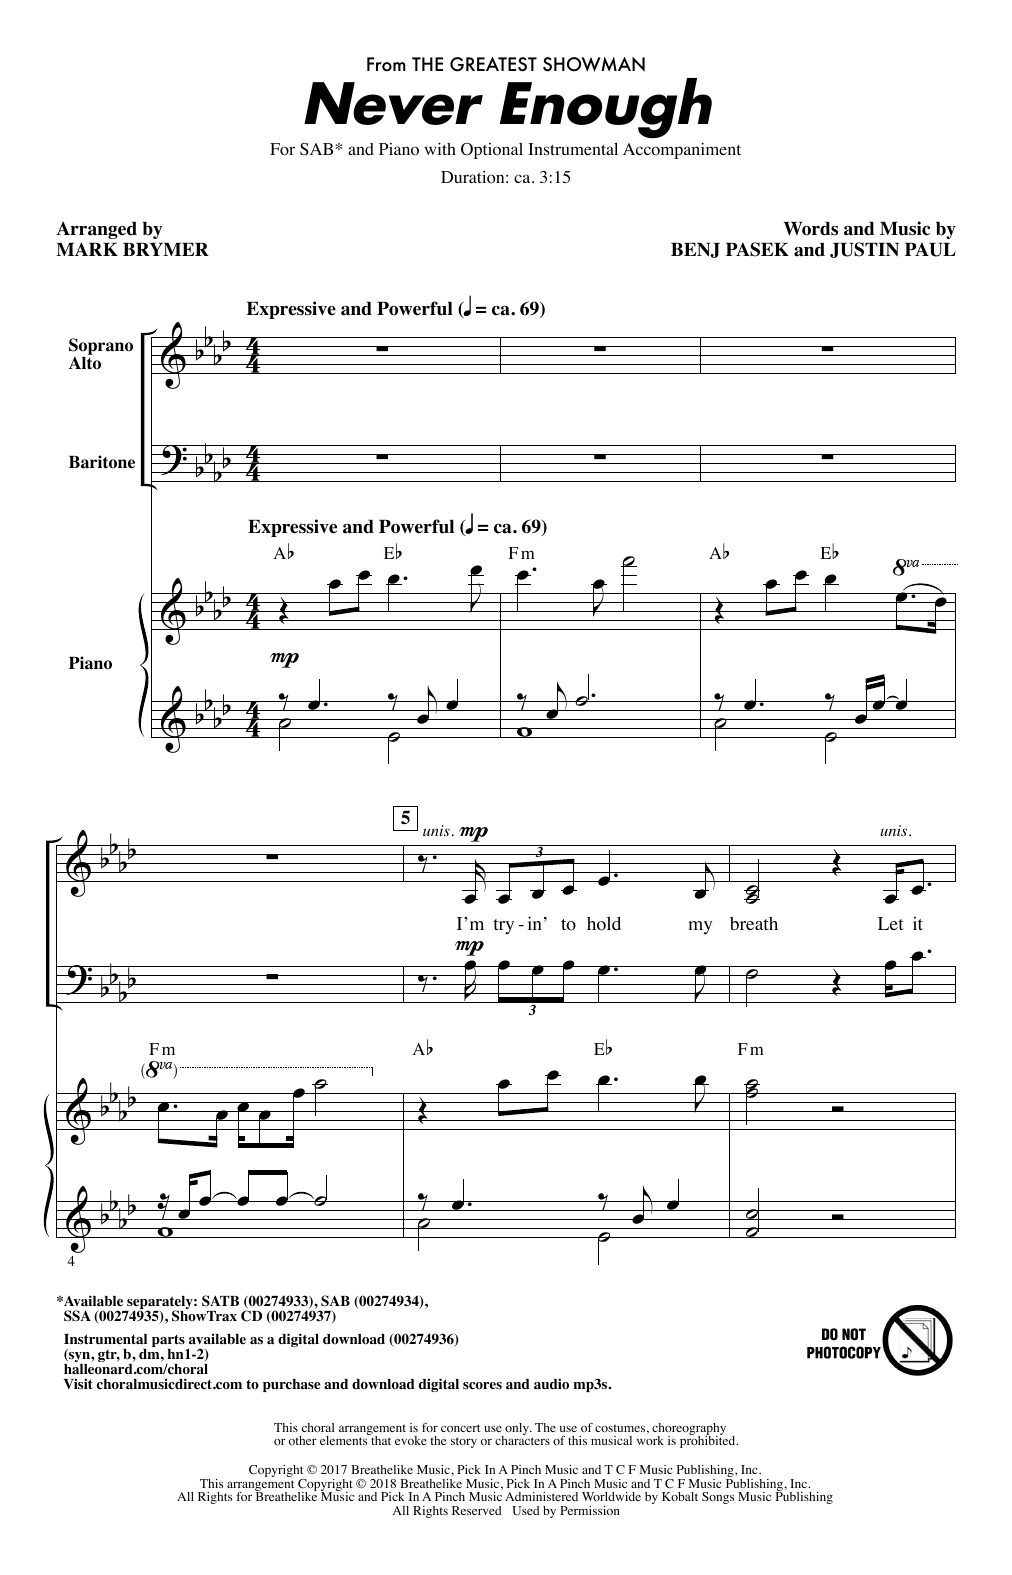 Pasek & Paul Never Enough (from The Greatest Showman) (arr. Mark Brymer) sheet music notes and chords. Download Printable PDF.